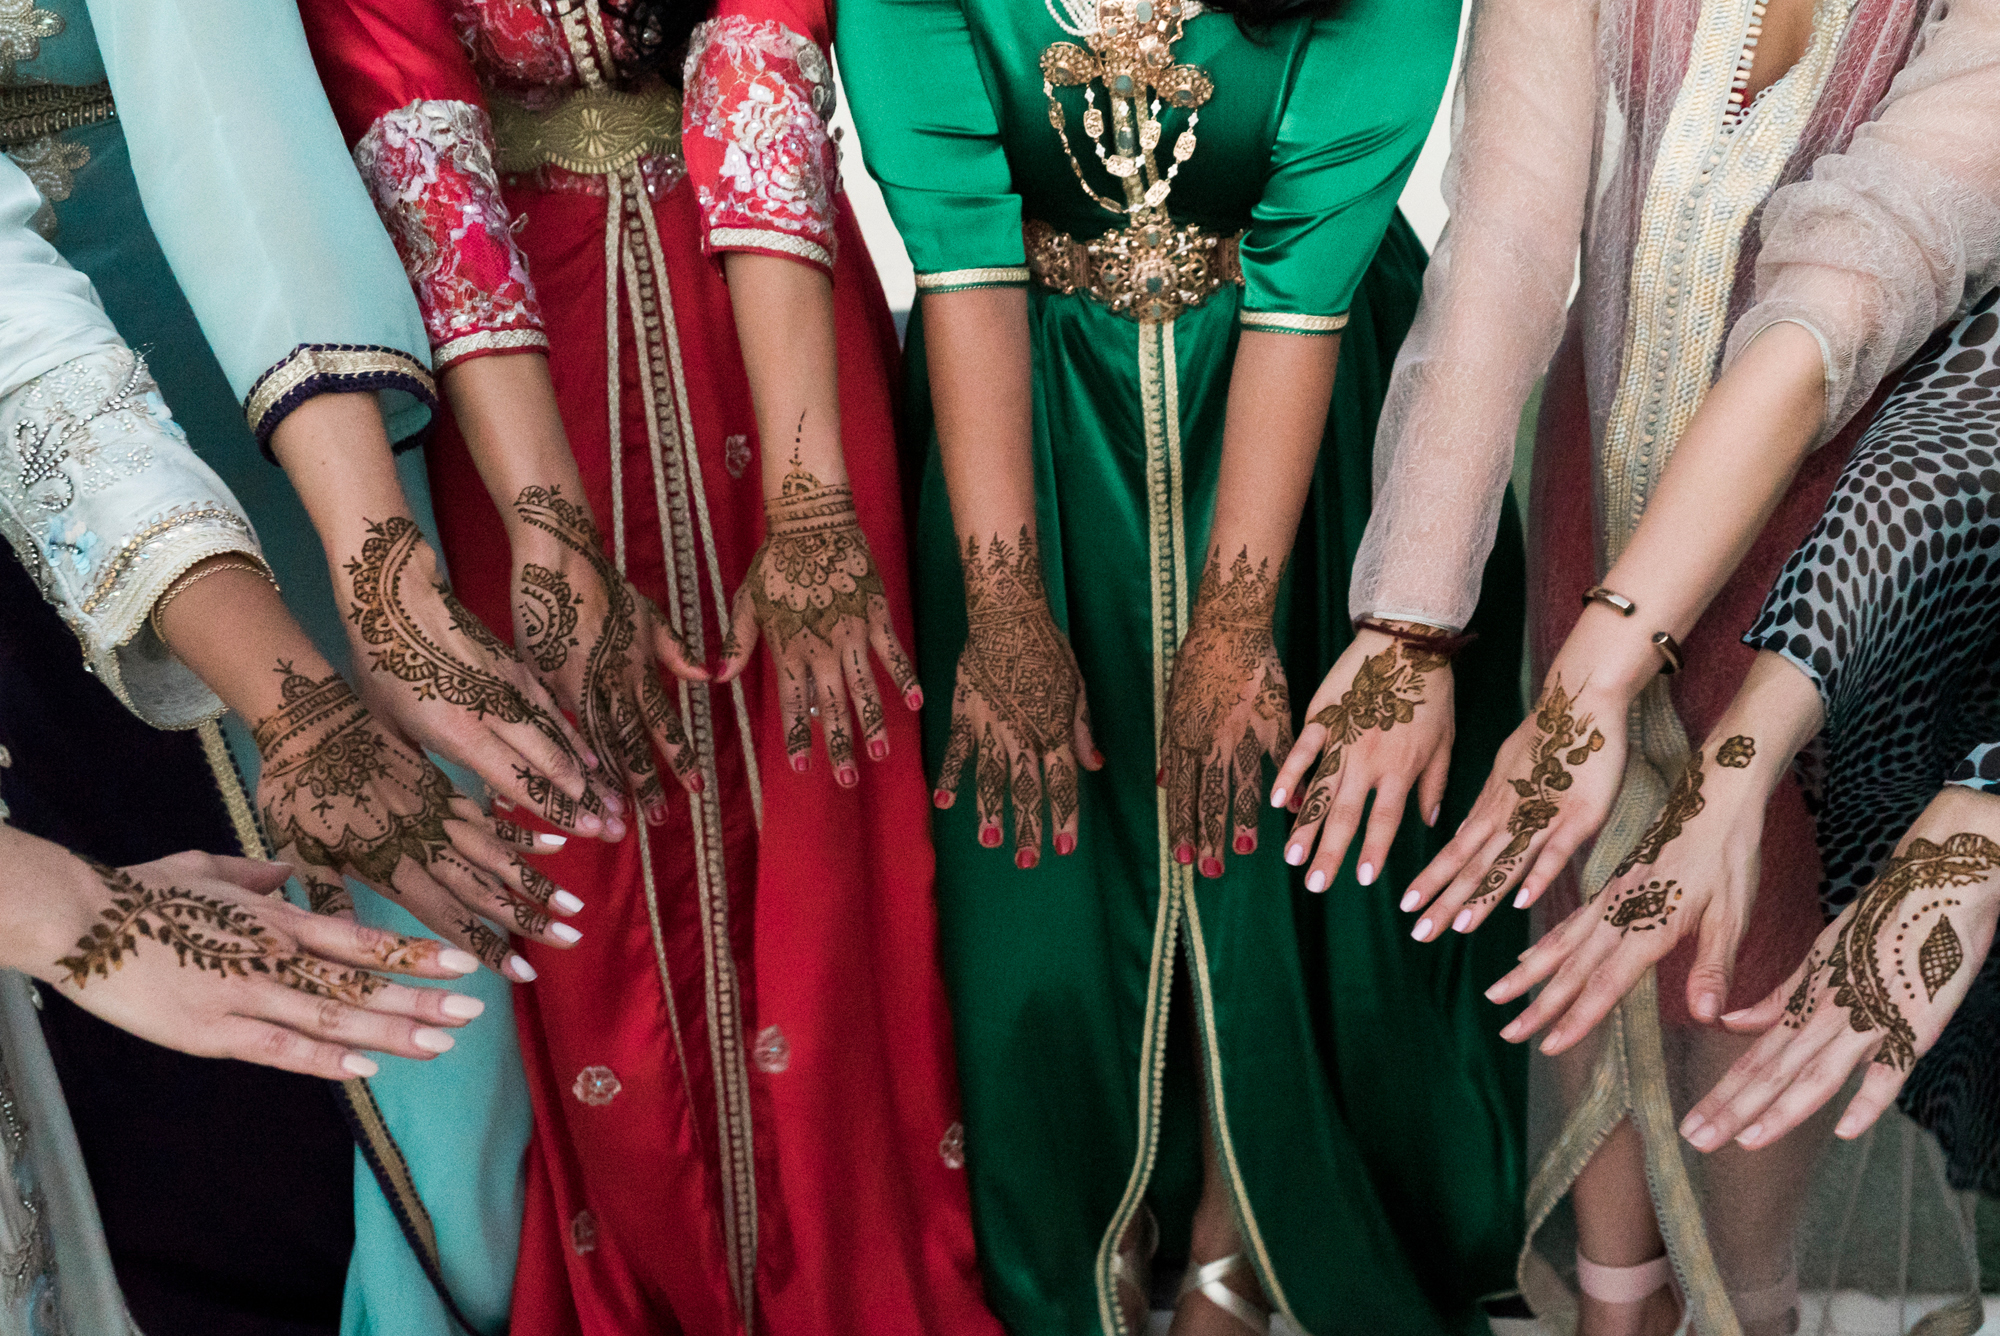 morocco-destination-wedding-henna-ceremony-lilouette-22.jpg